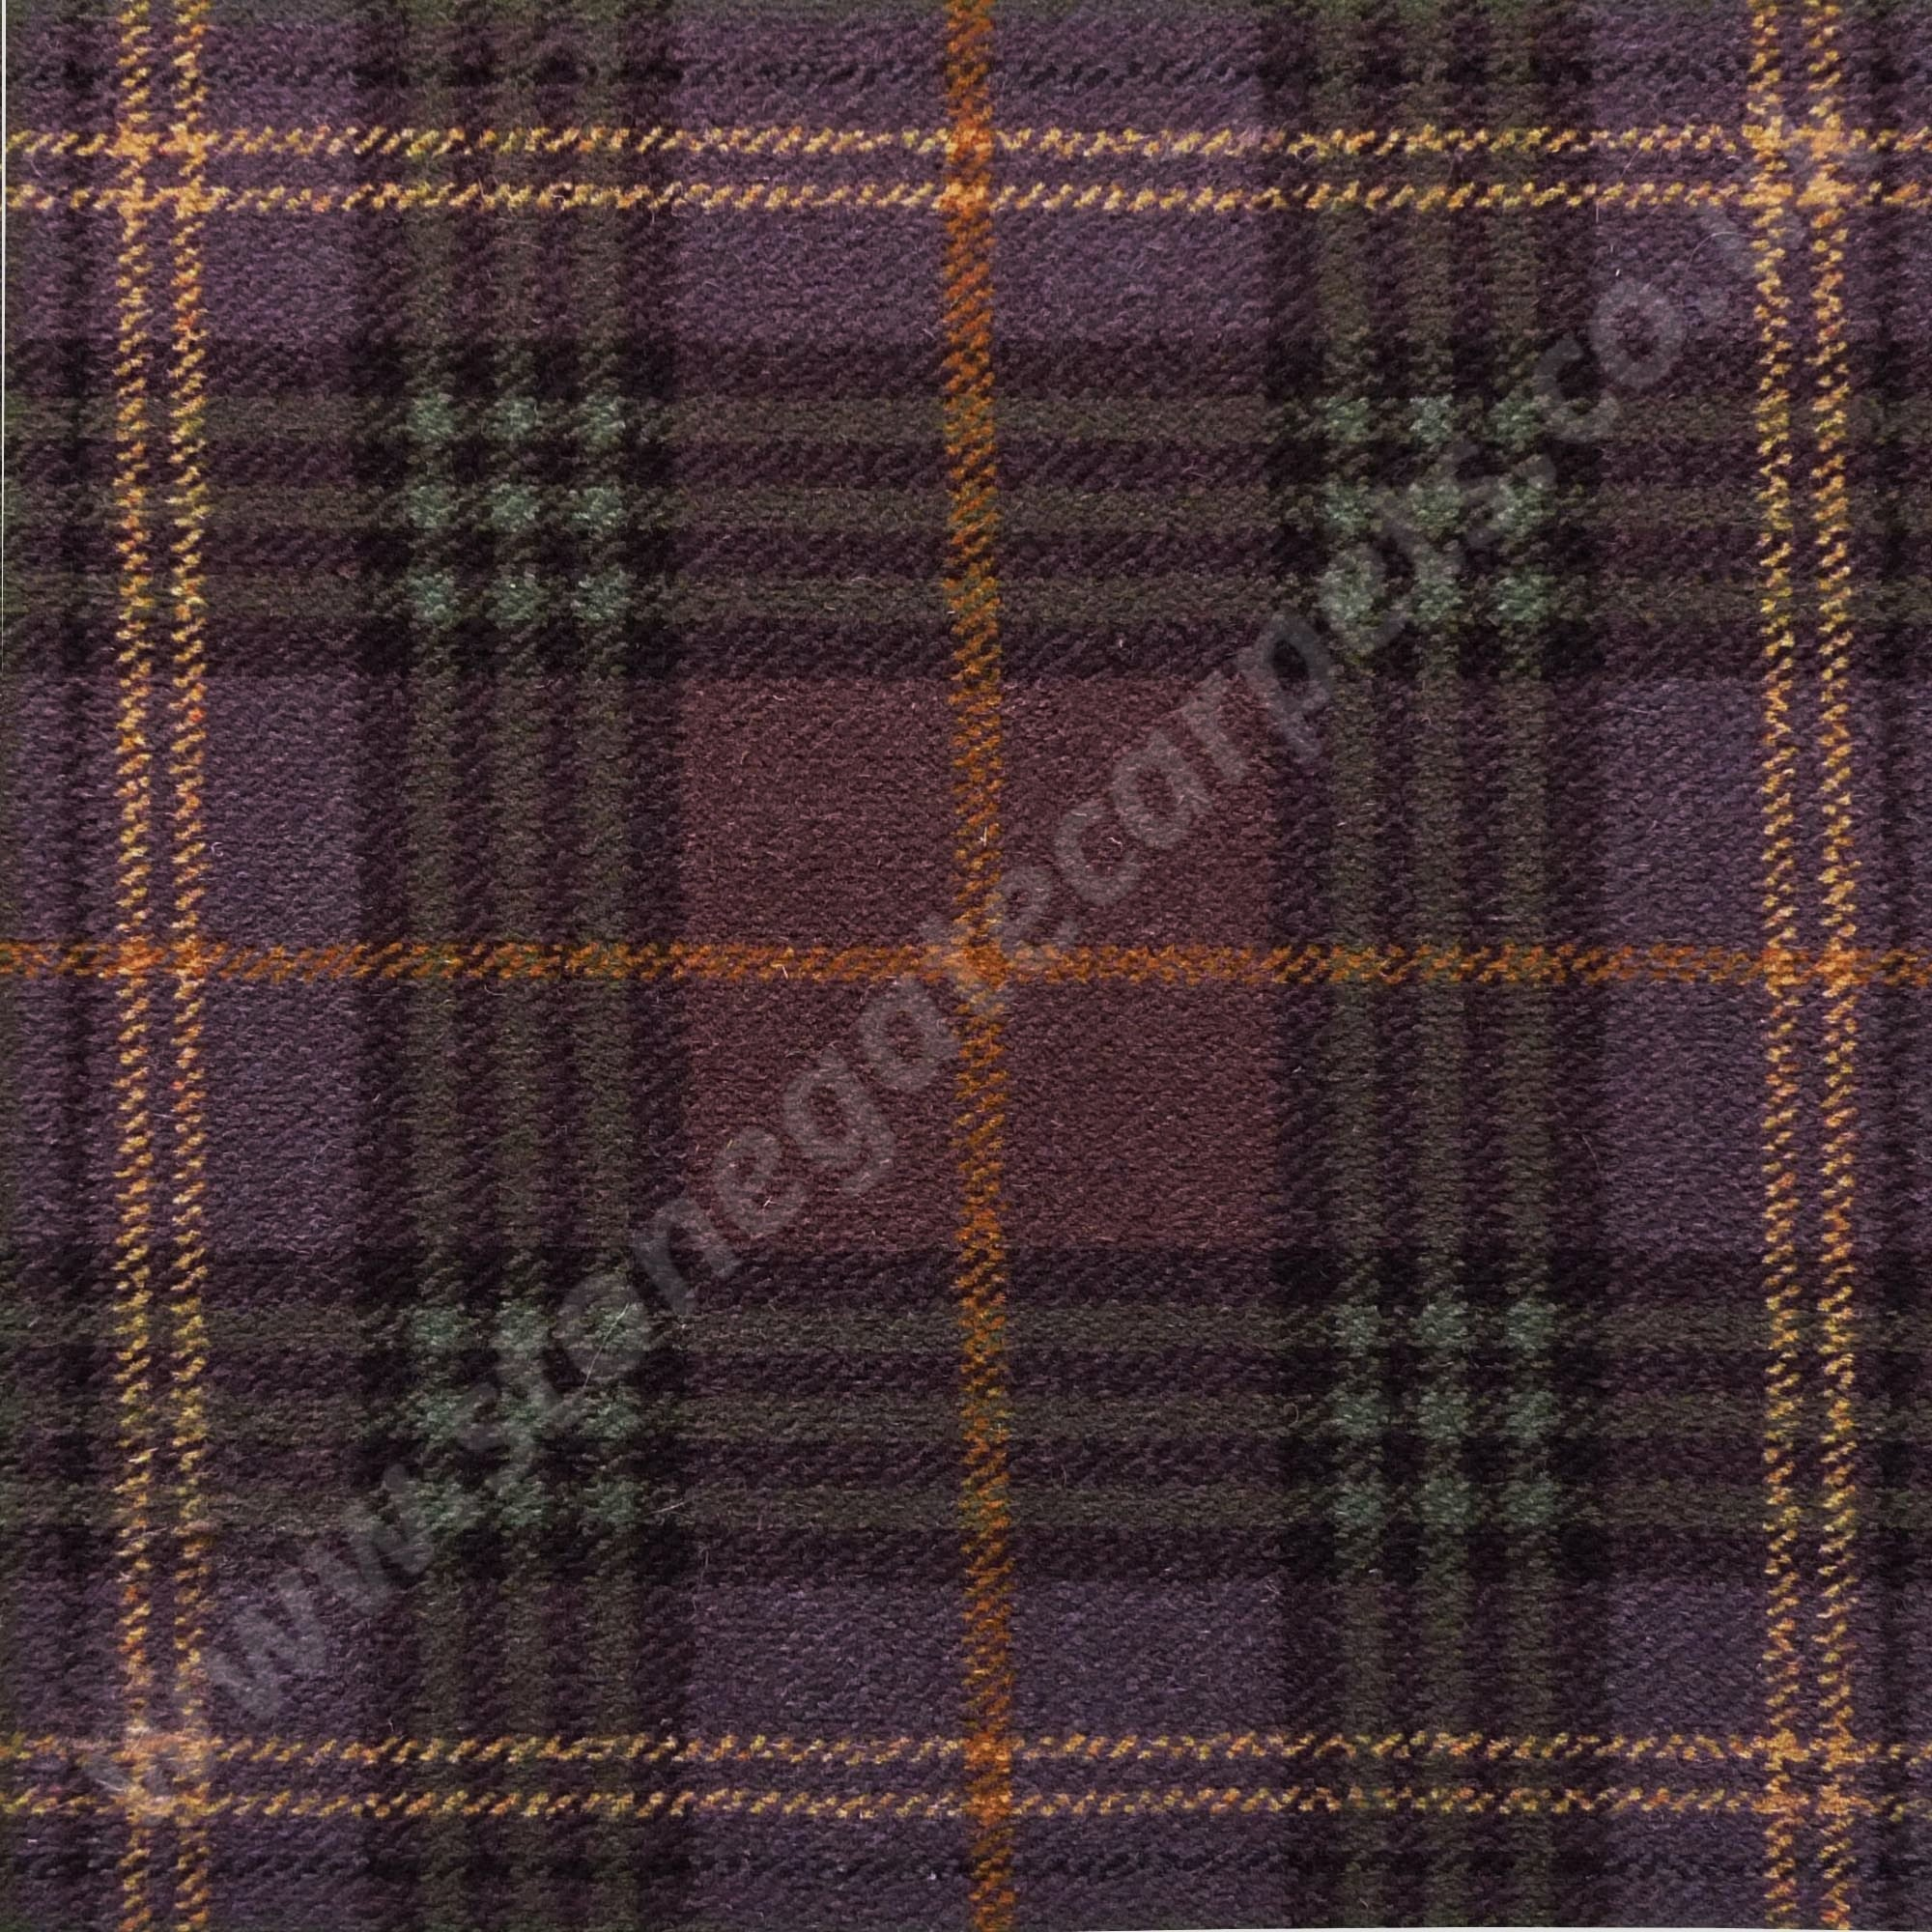 Brintons Carpets Abbeyglen Fermanagh Plaid Carpet 9 38258